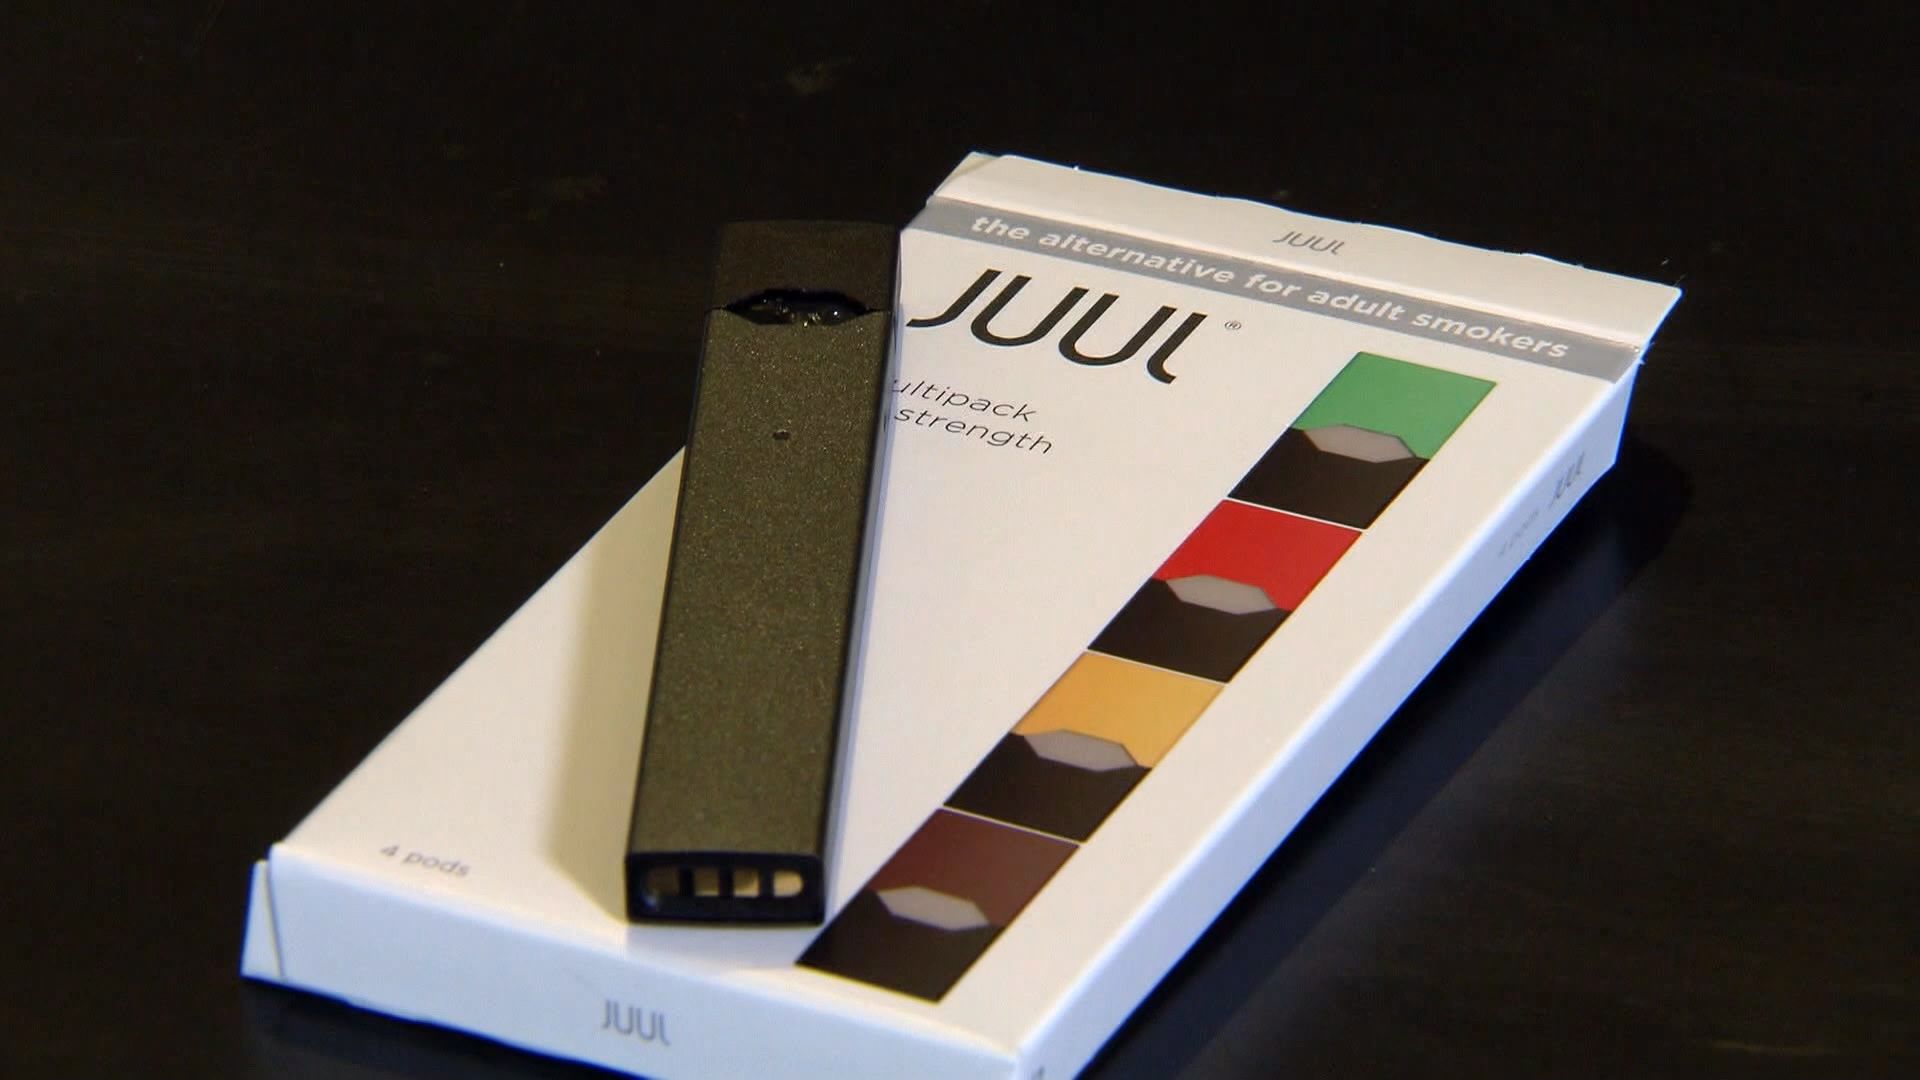 Lawsuit: Juul e-cigarettes are deliberately highly addictive